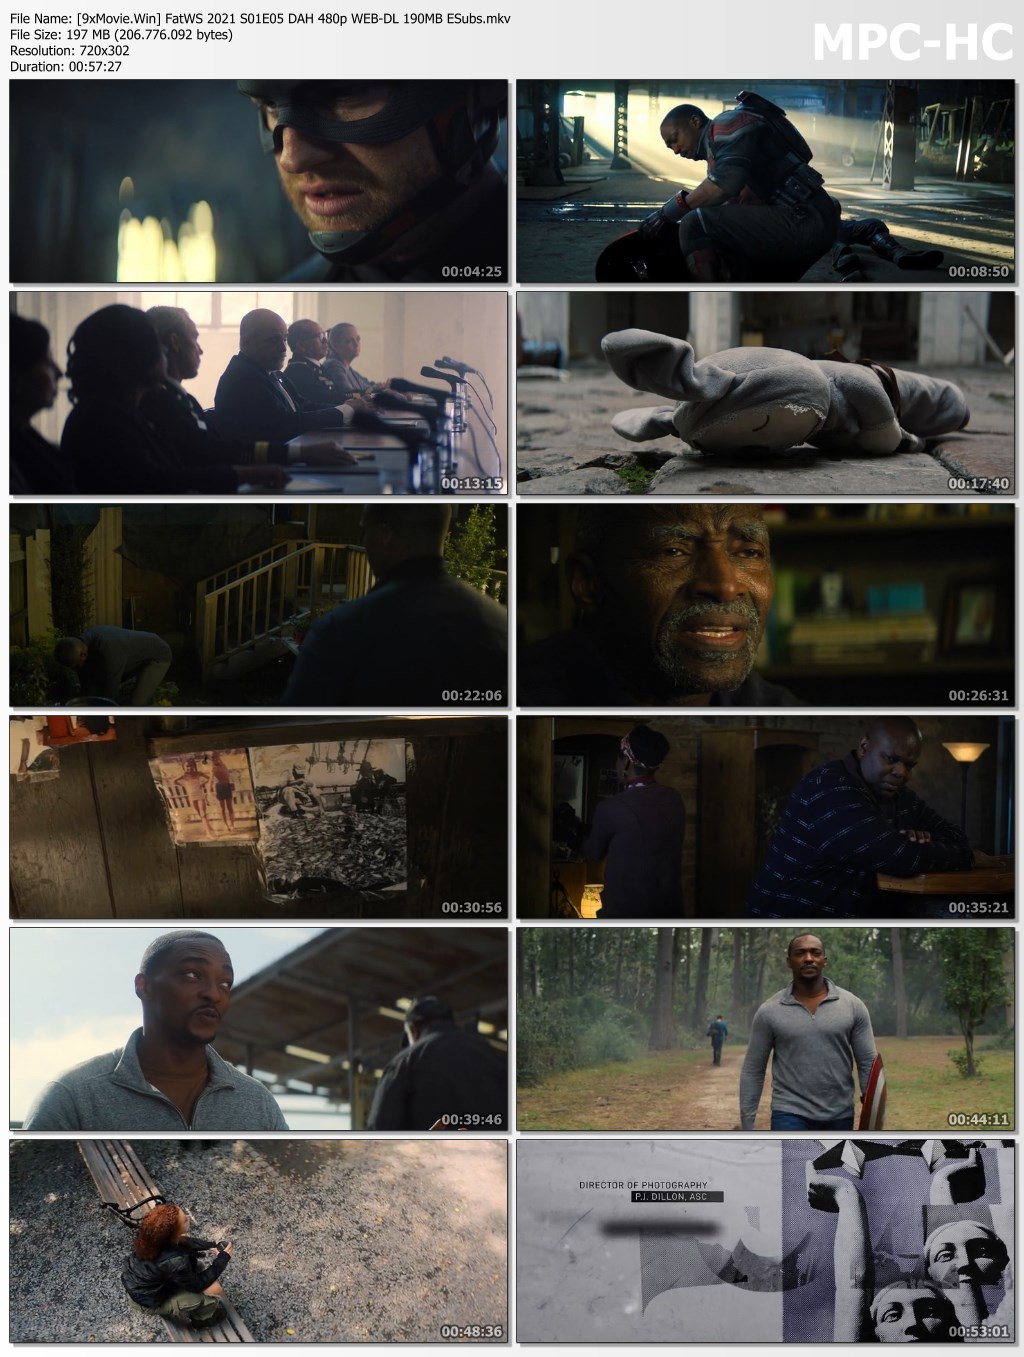 Falcon and the Winter Soldier 2021 S01E05 Dual Audio Hindi 480p WEB-DL x264 190MB ESubs